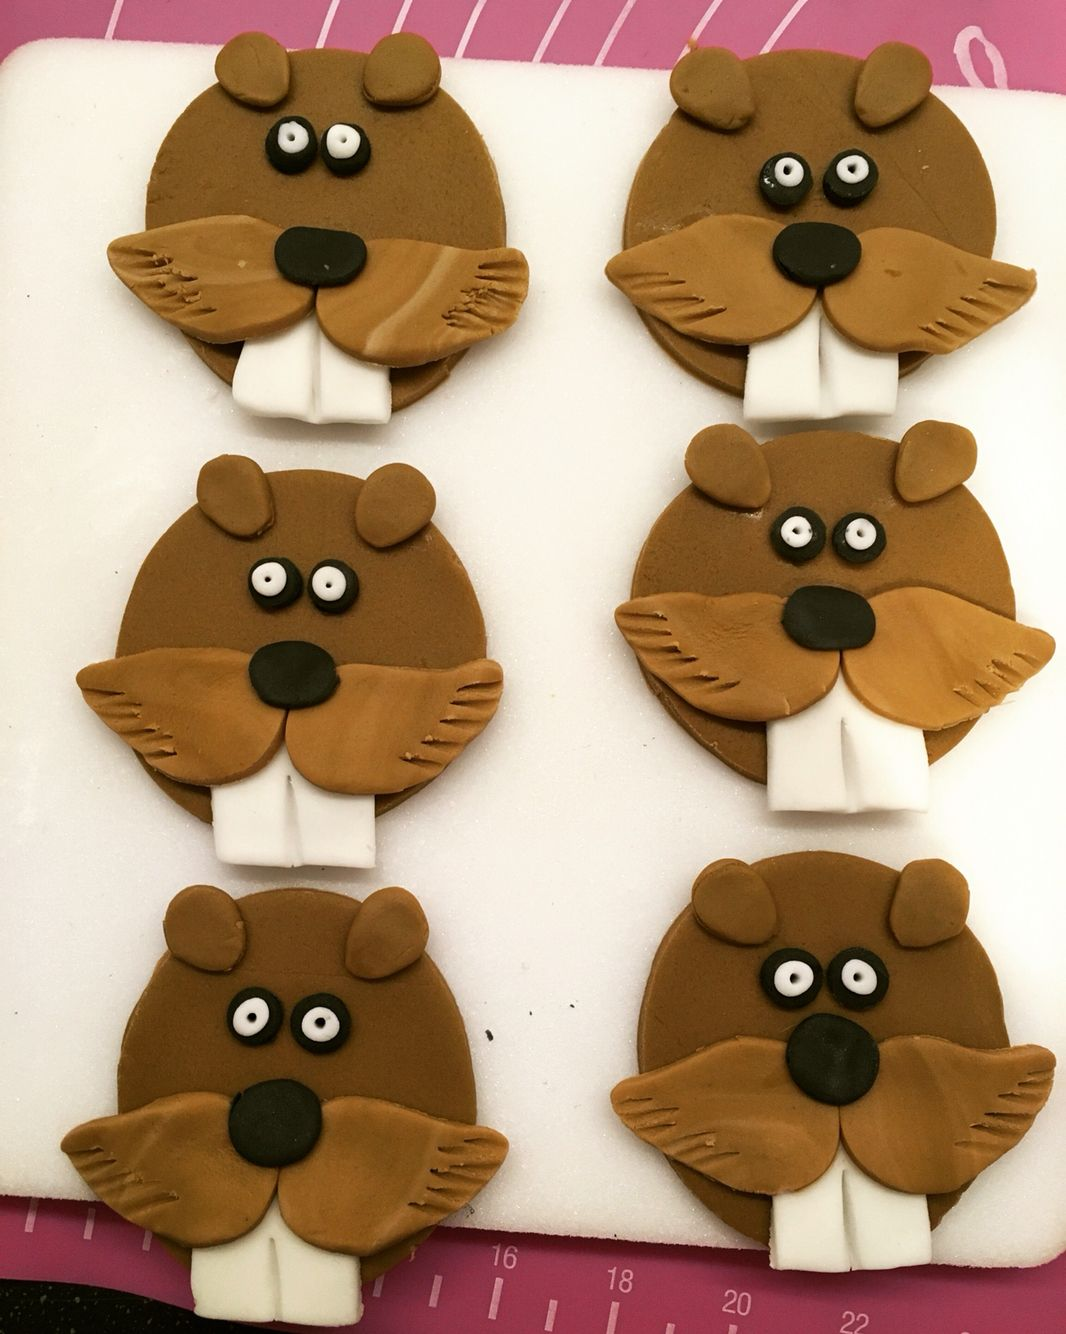 Beaver toppers for cupcakes